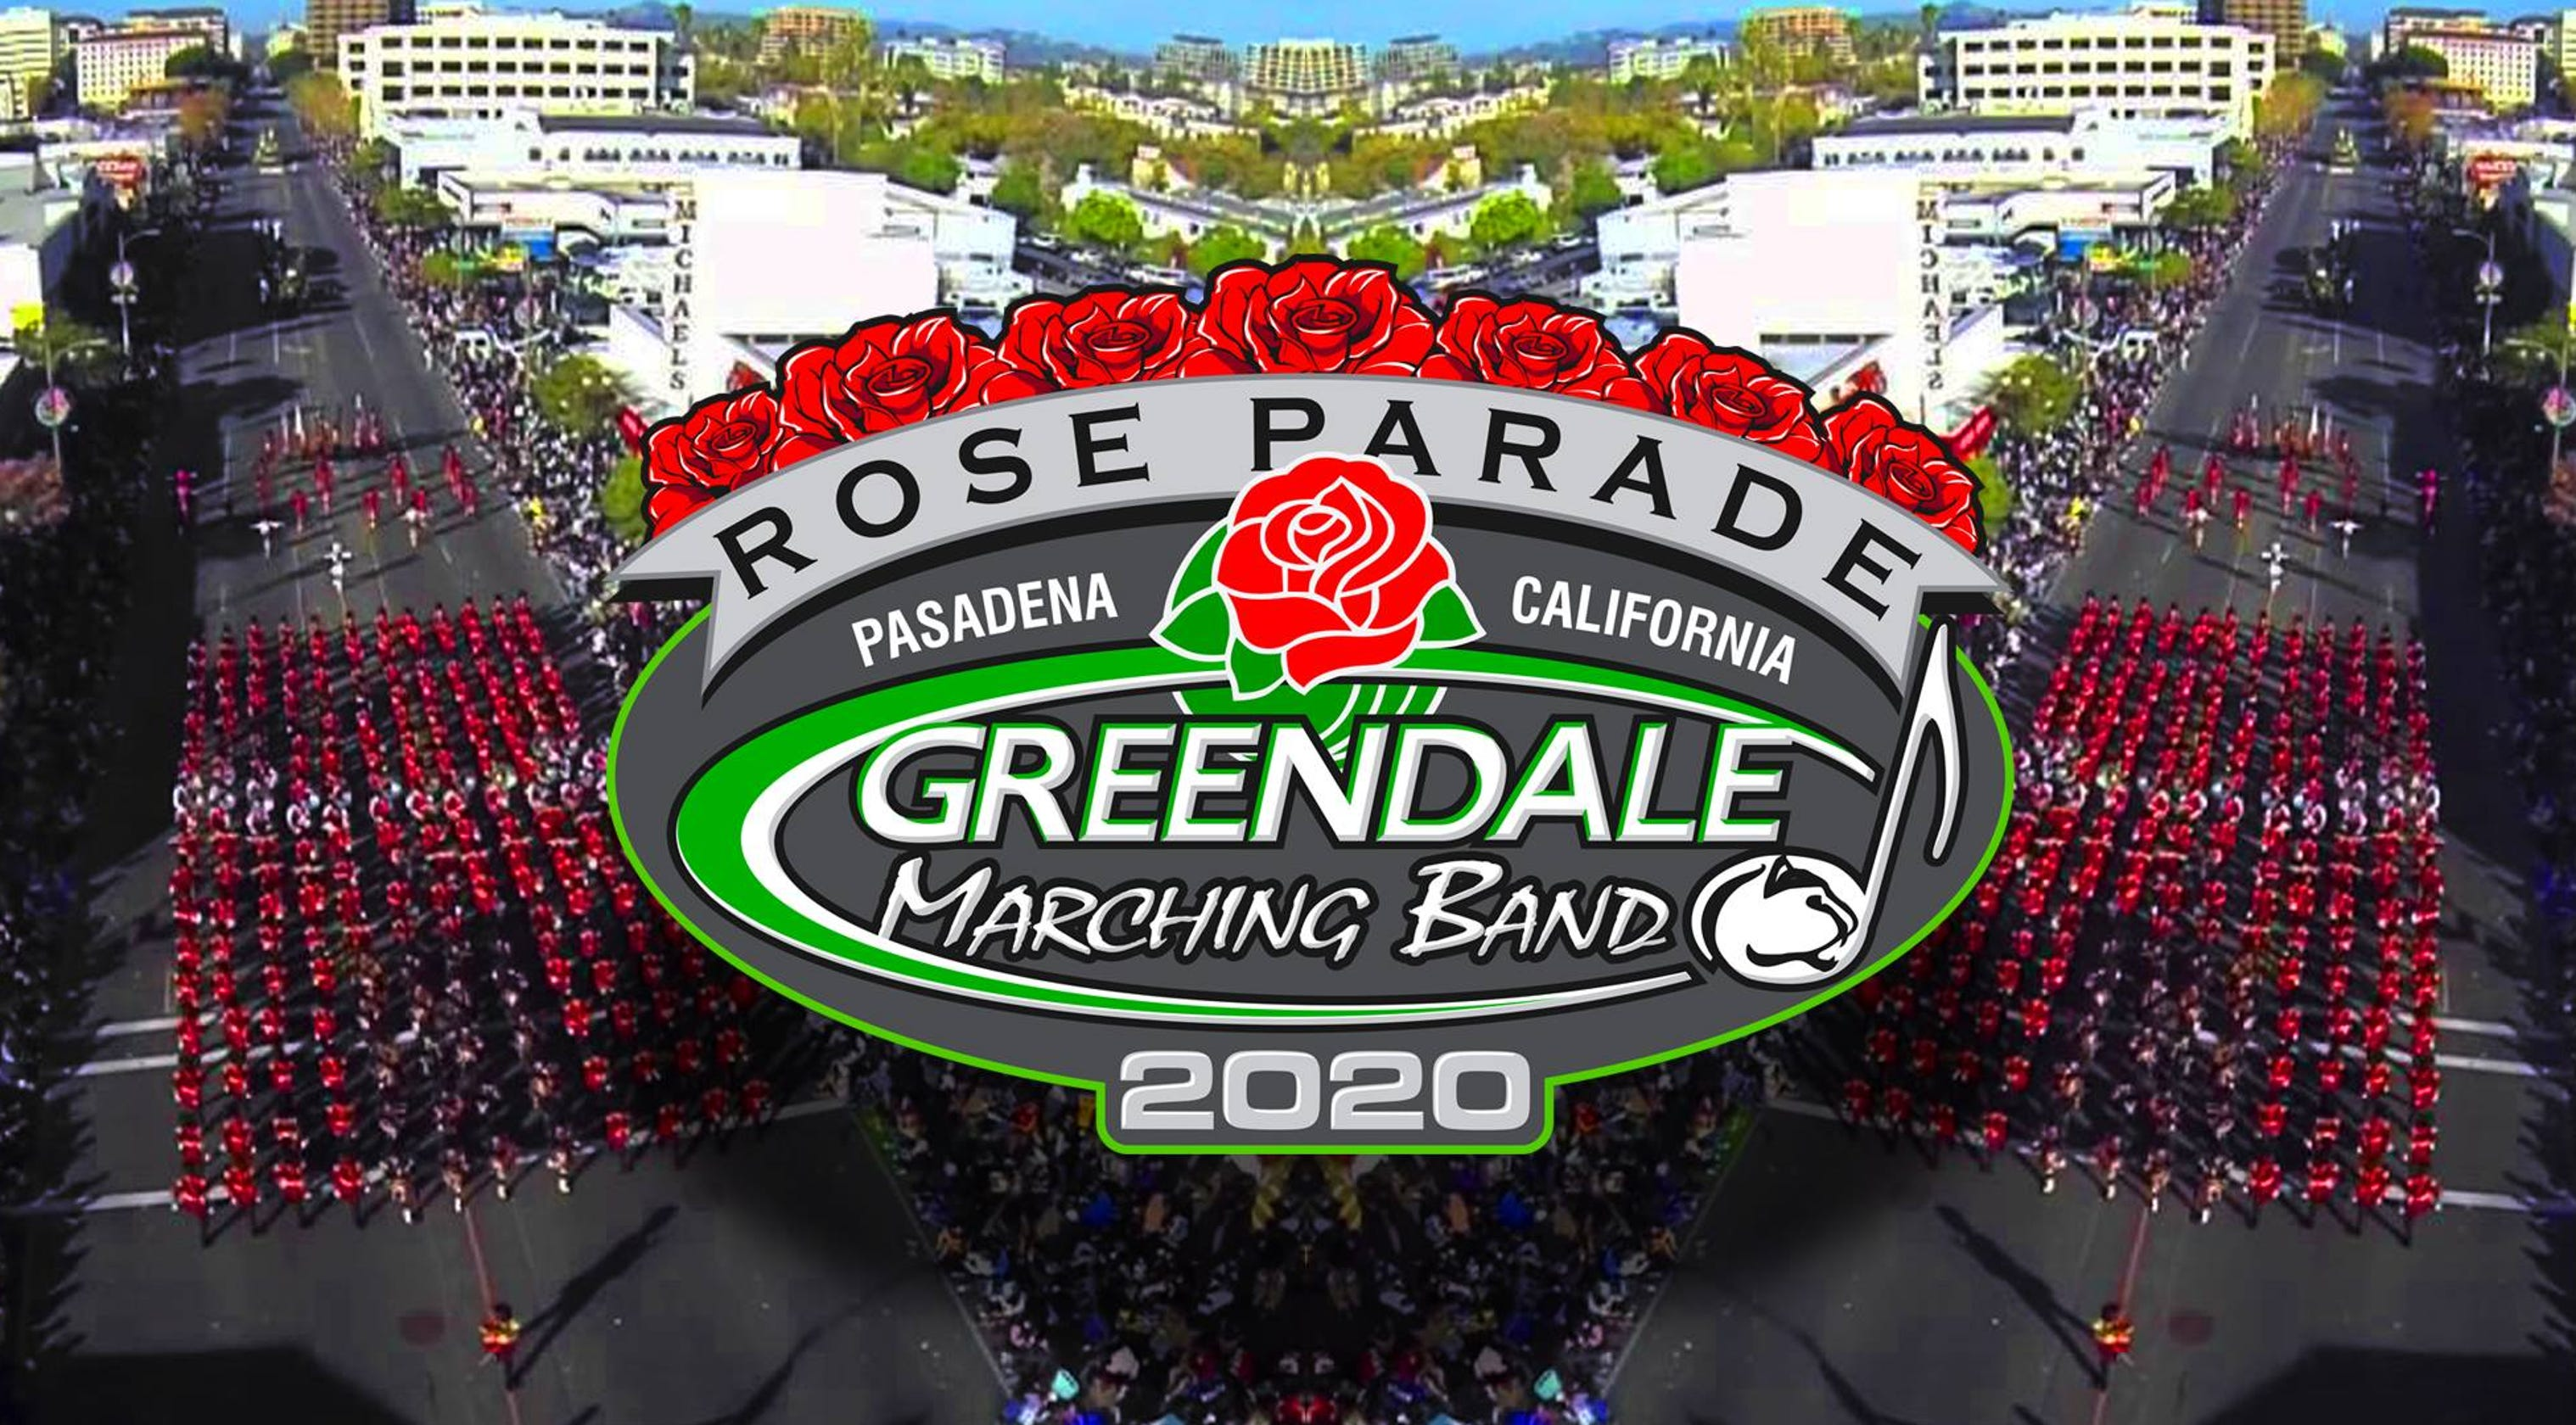 Greendale Hs Marching Band Headed To 2020 Rose Parade In Pasadena